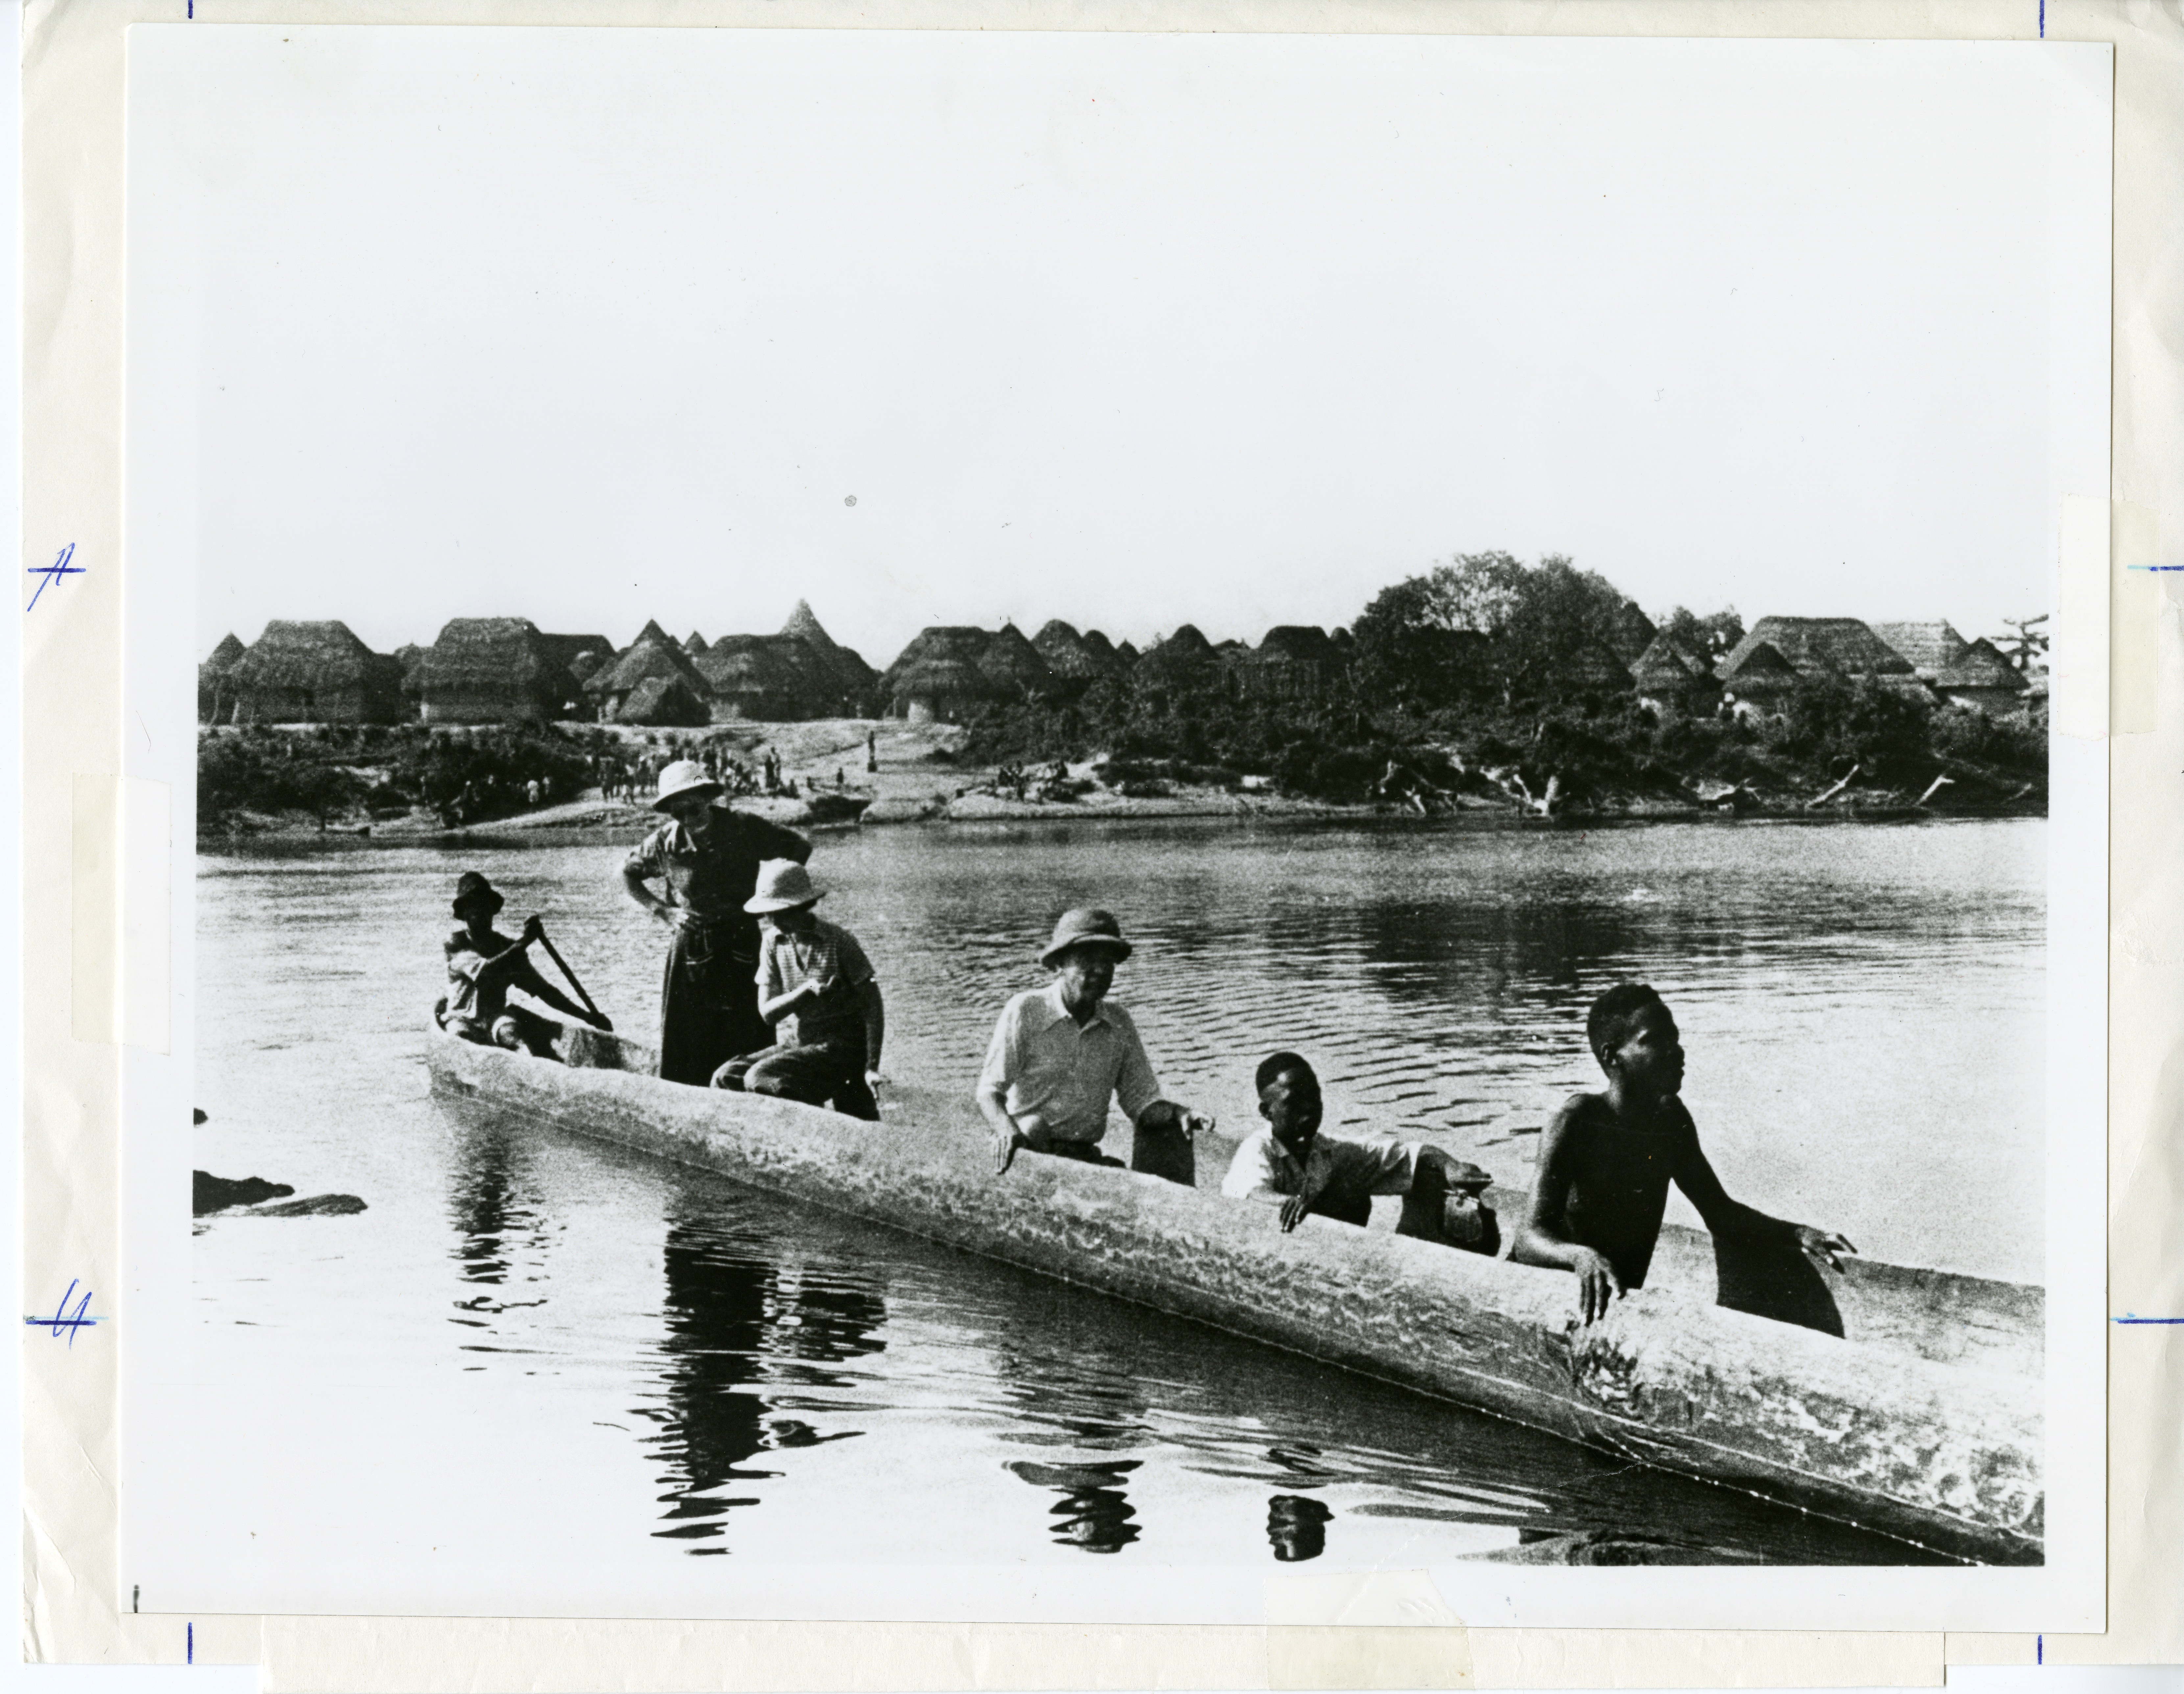 William and Lucile Mann and other ride in a canoe.